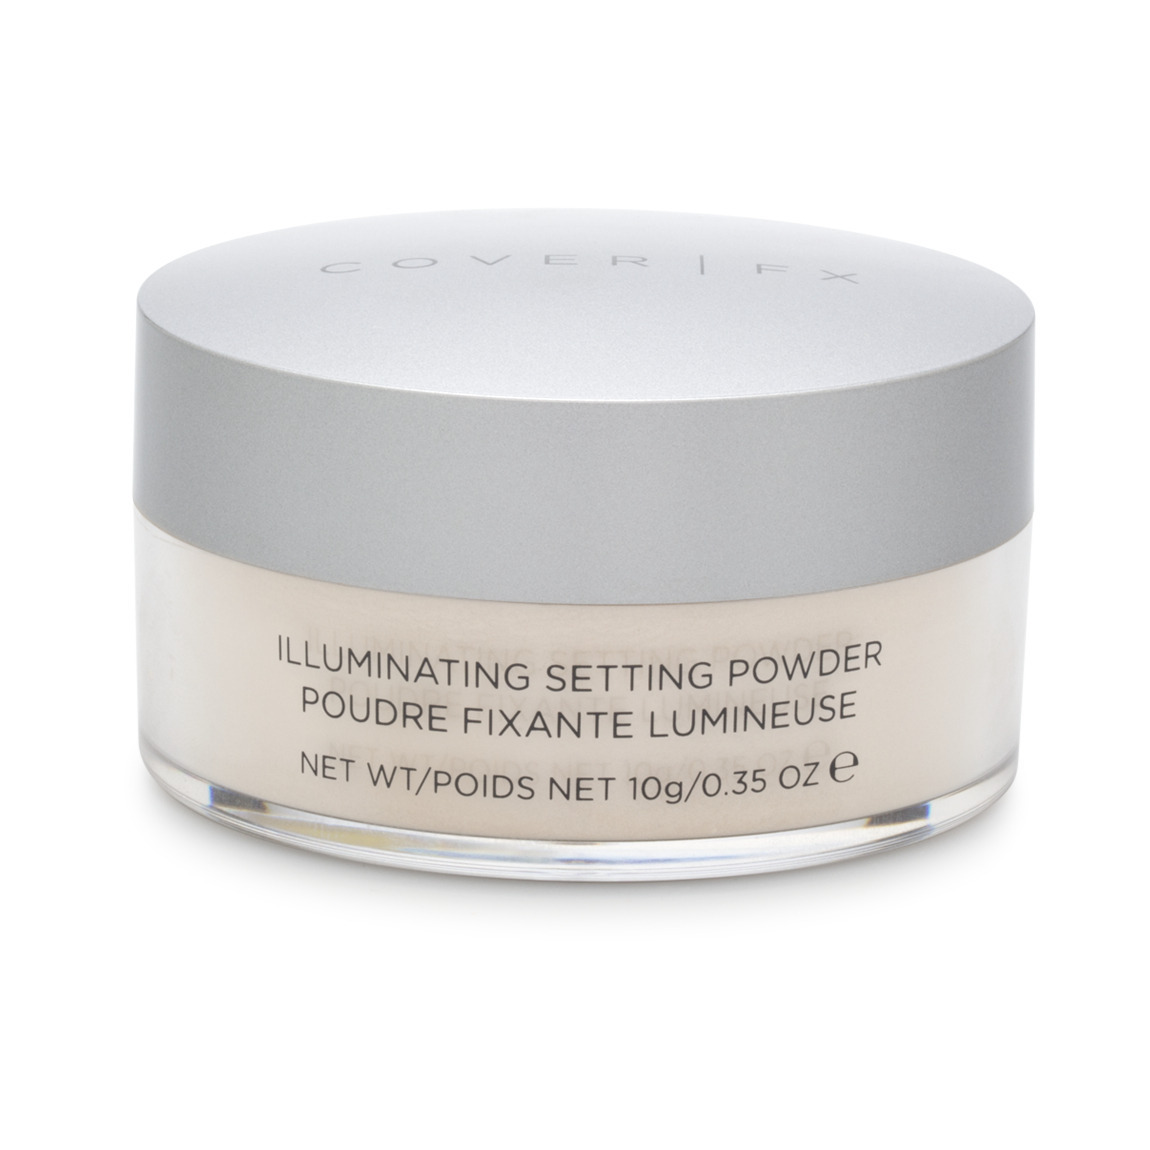 luxury  makeup  products  best-selling makeup products COVER FX Illuminating Setting Powder